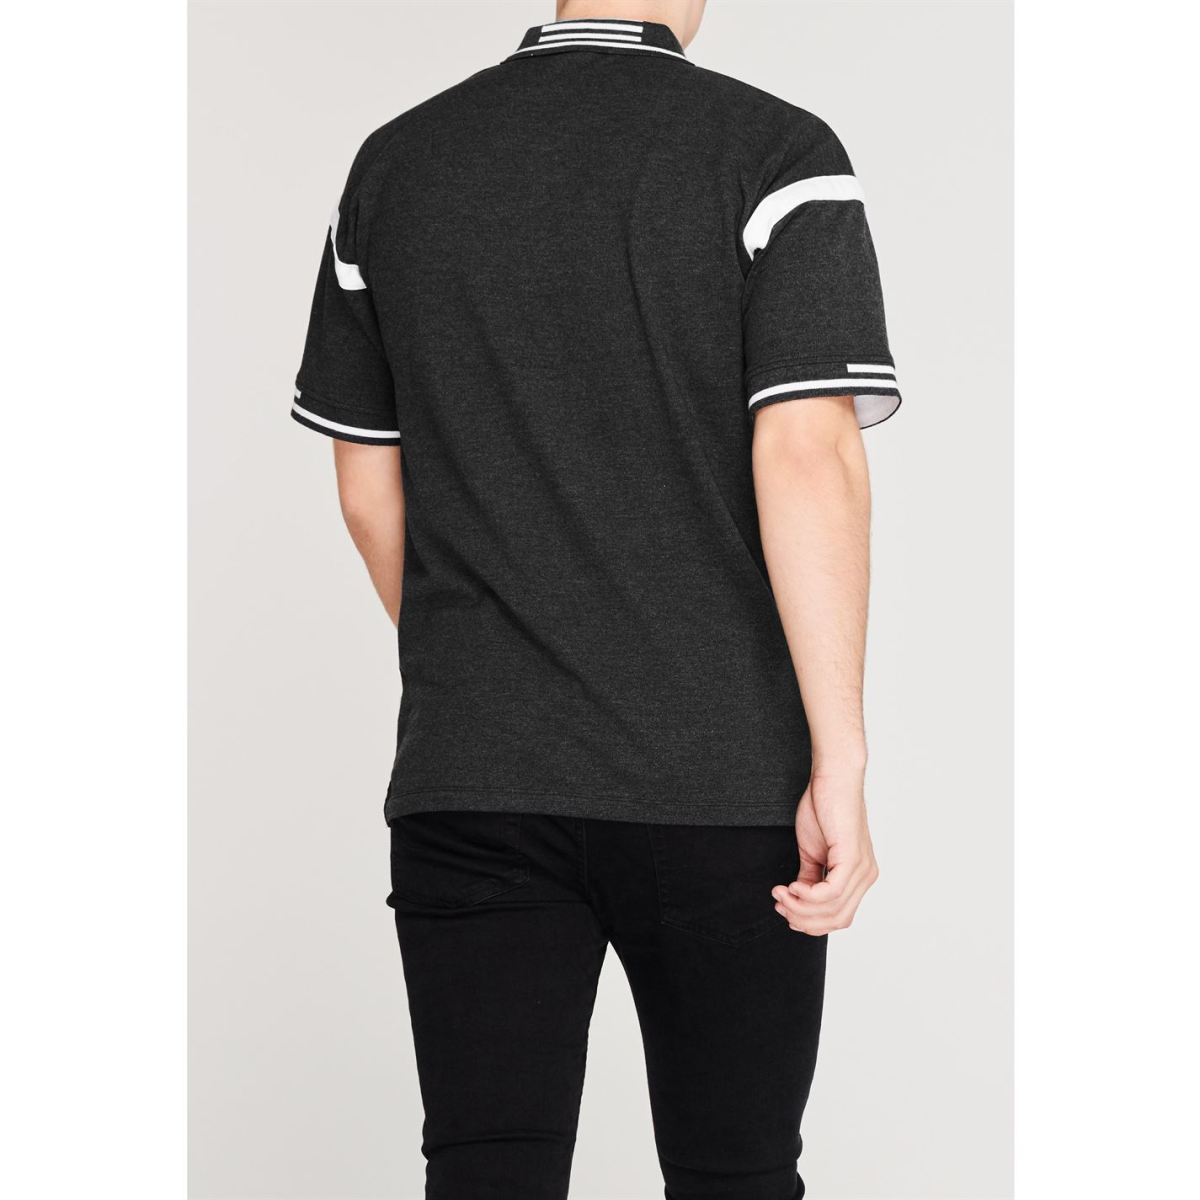 Jack And Jones Poloshirt T-Shirt Polohemd Herren 2243